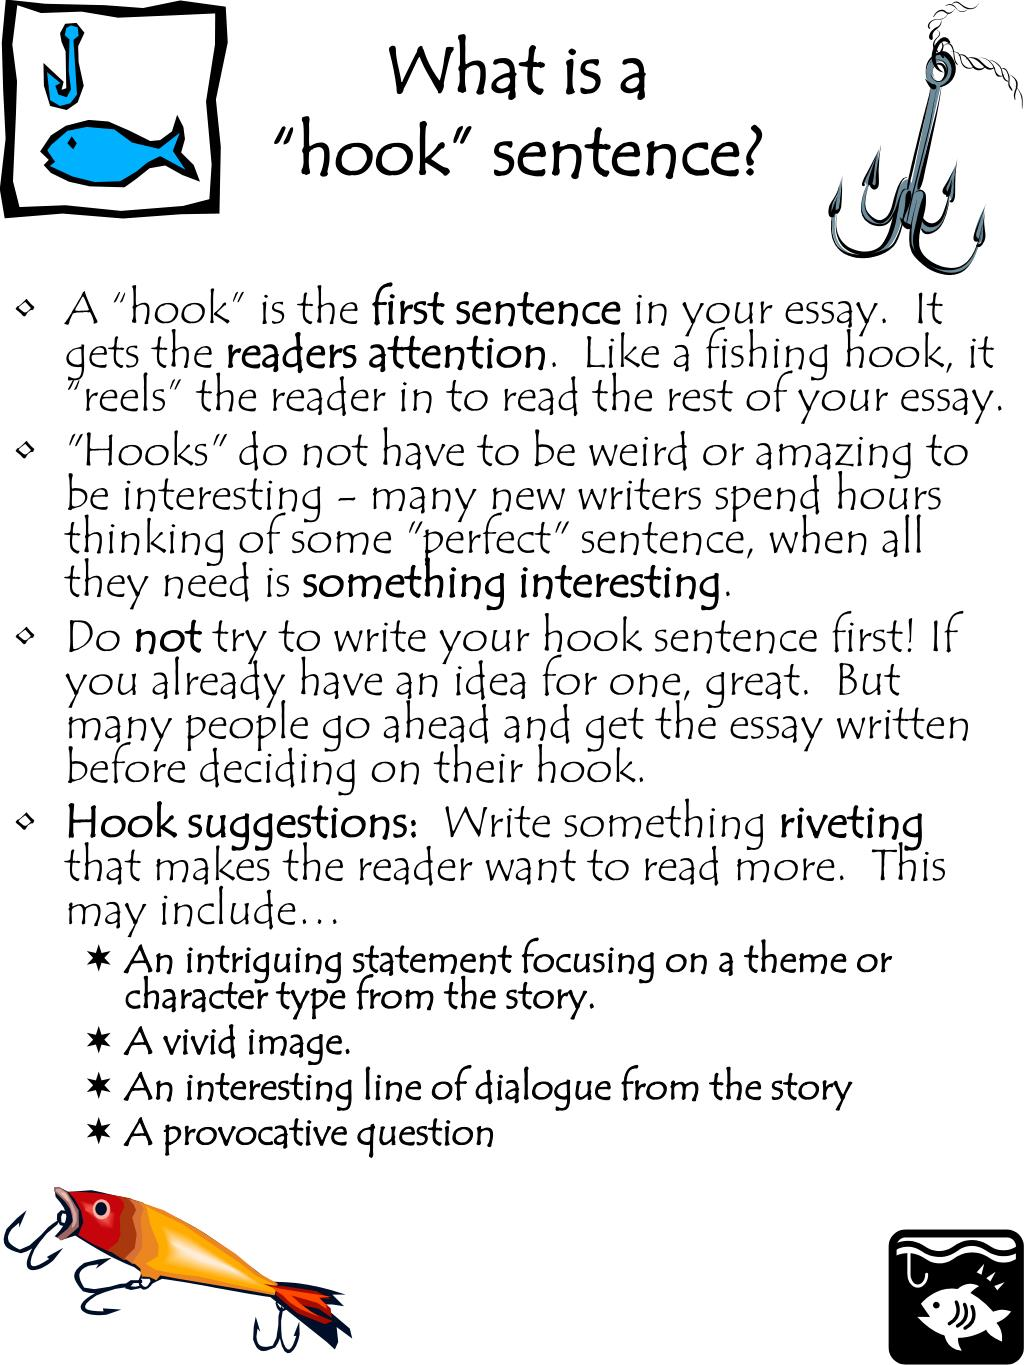 How to connect the hook to the topic in an essay